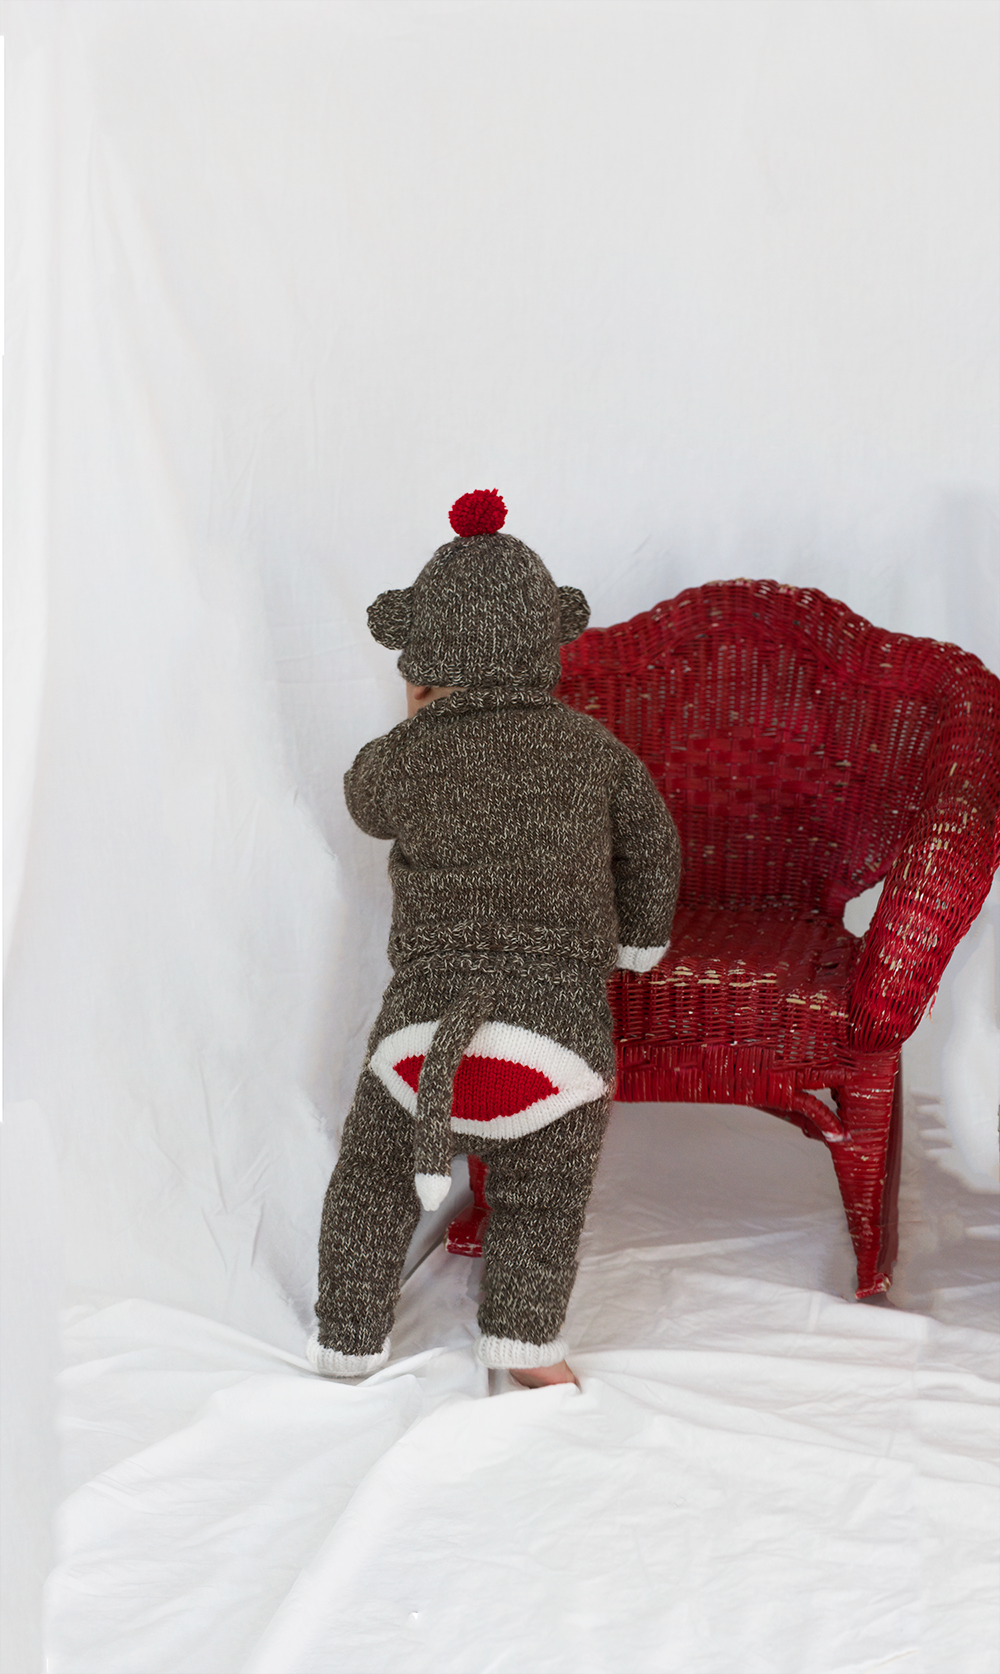 Knitting Patterns For Sock Monkey Clothes : Hand Knit Sock Monkey Costume Knittybutton